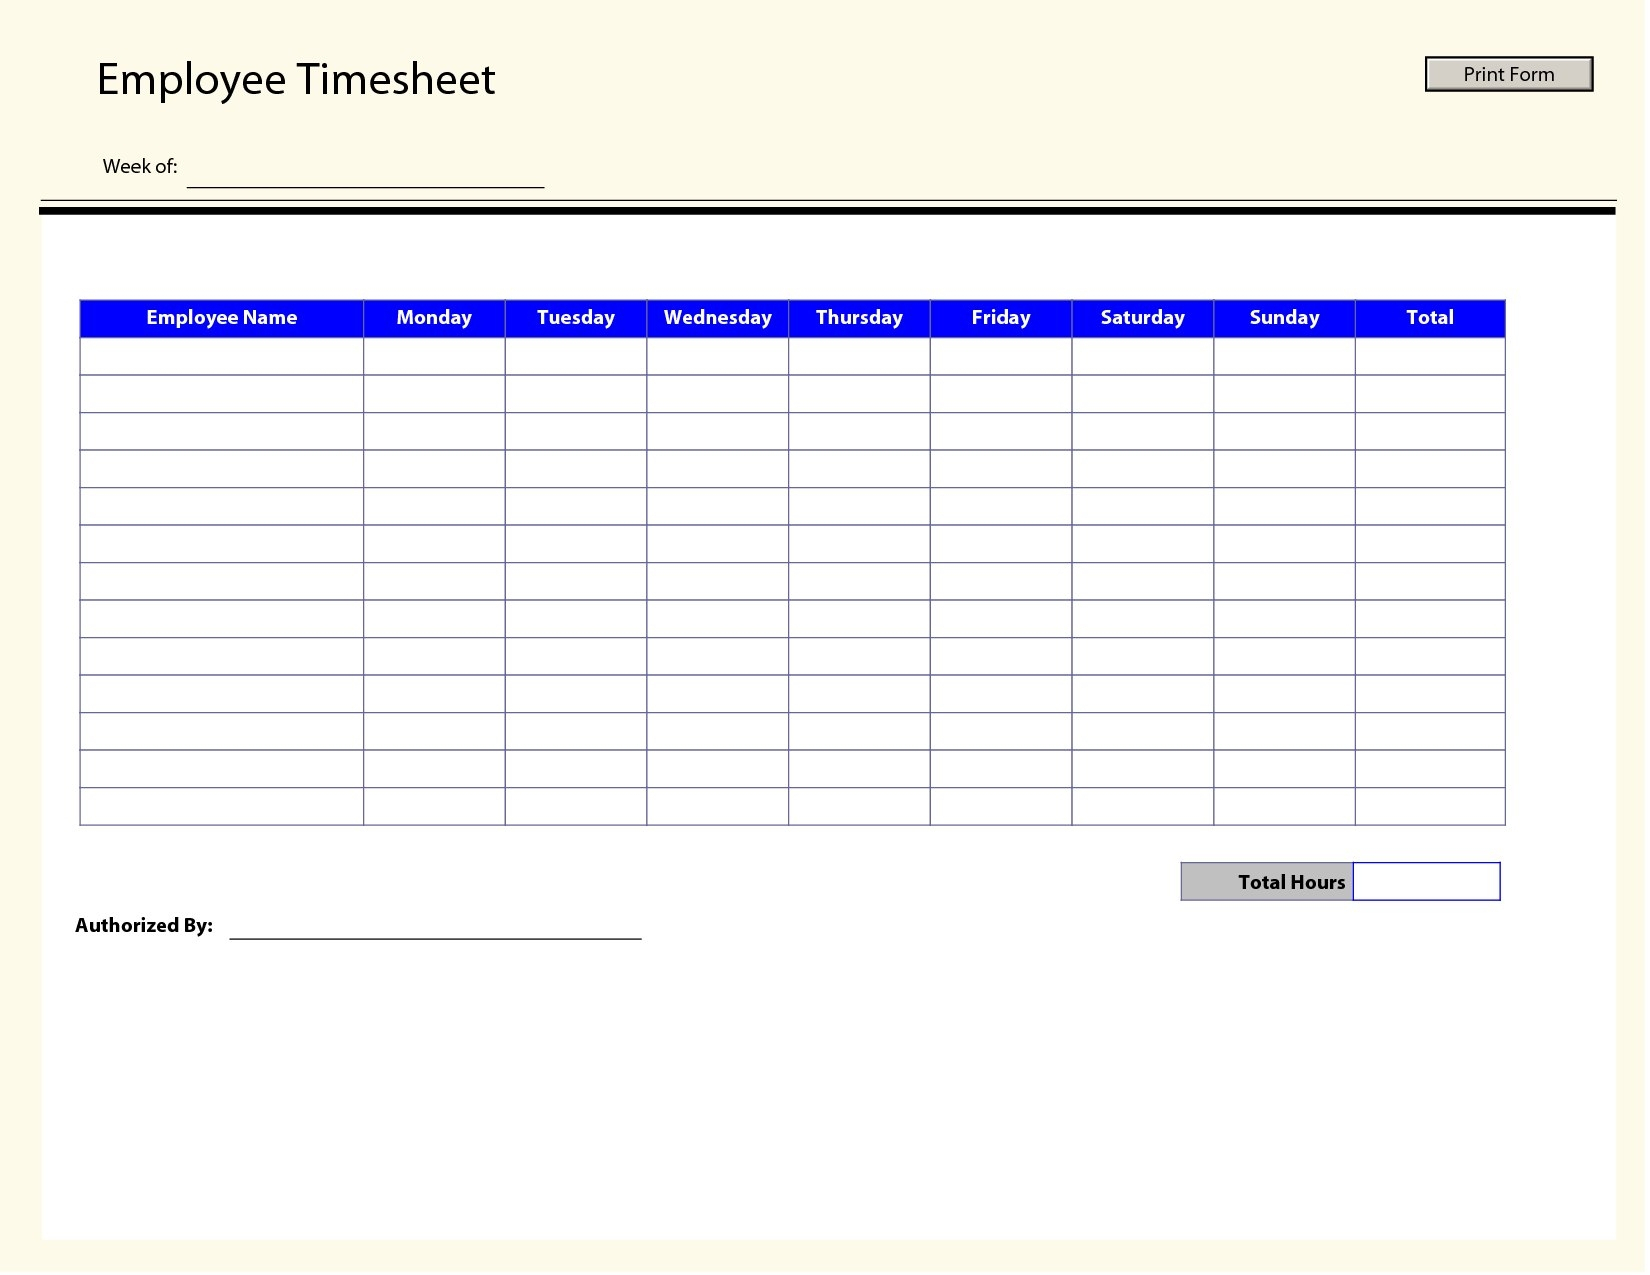 009 Free Printable Monthly Timesheet Template Time Sheets Employee - Monthly Timesheet Template Free Printable